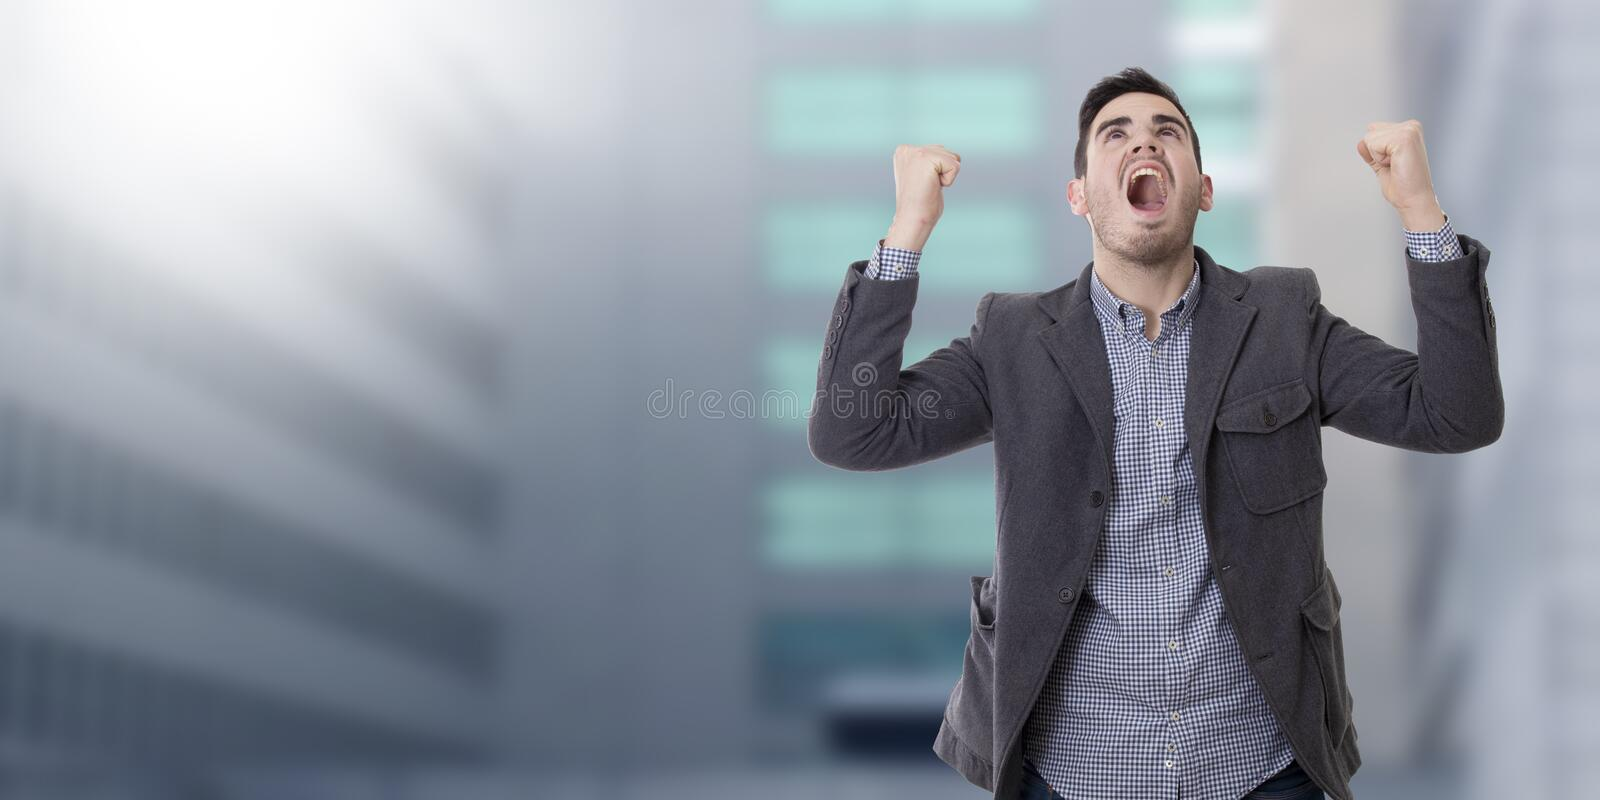 Man shouting enraged. Adult young man shouting enraged with the arms raised royalty free stock image